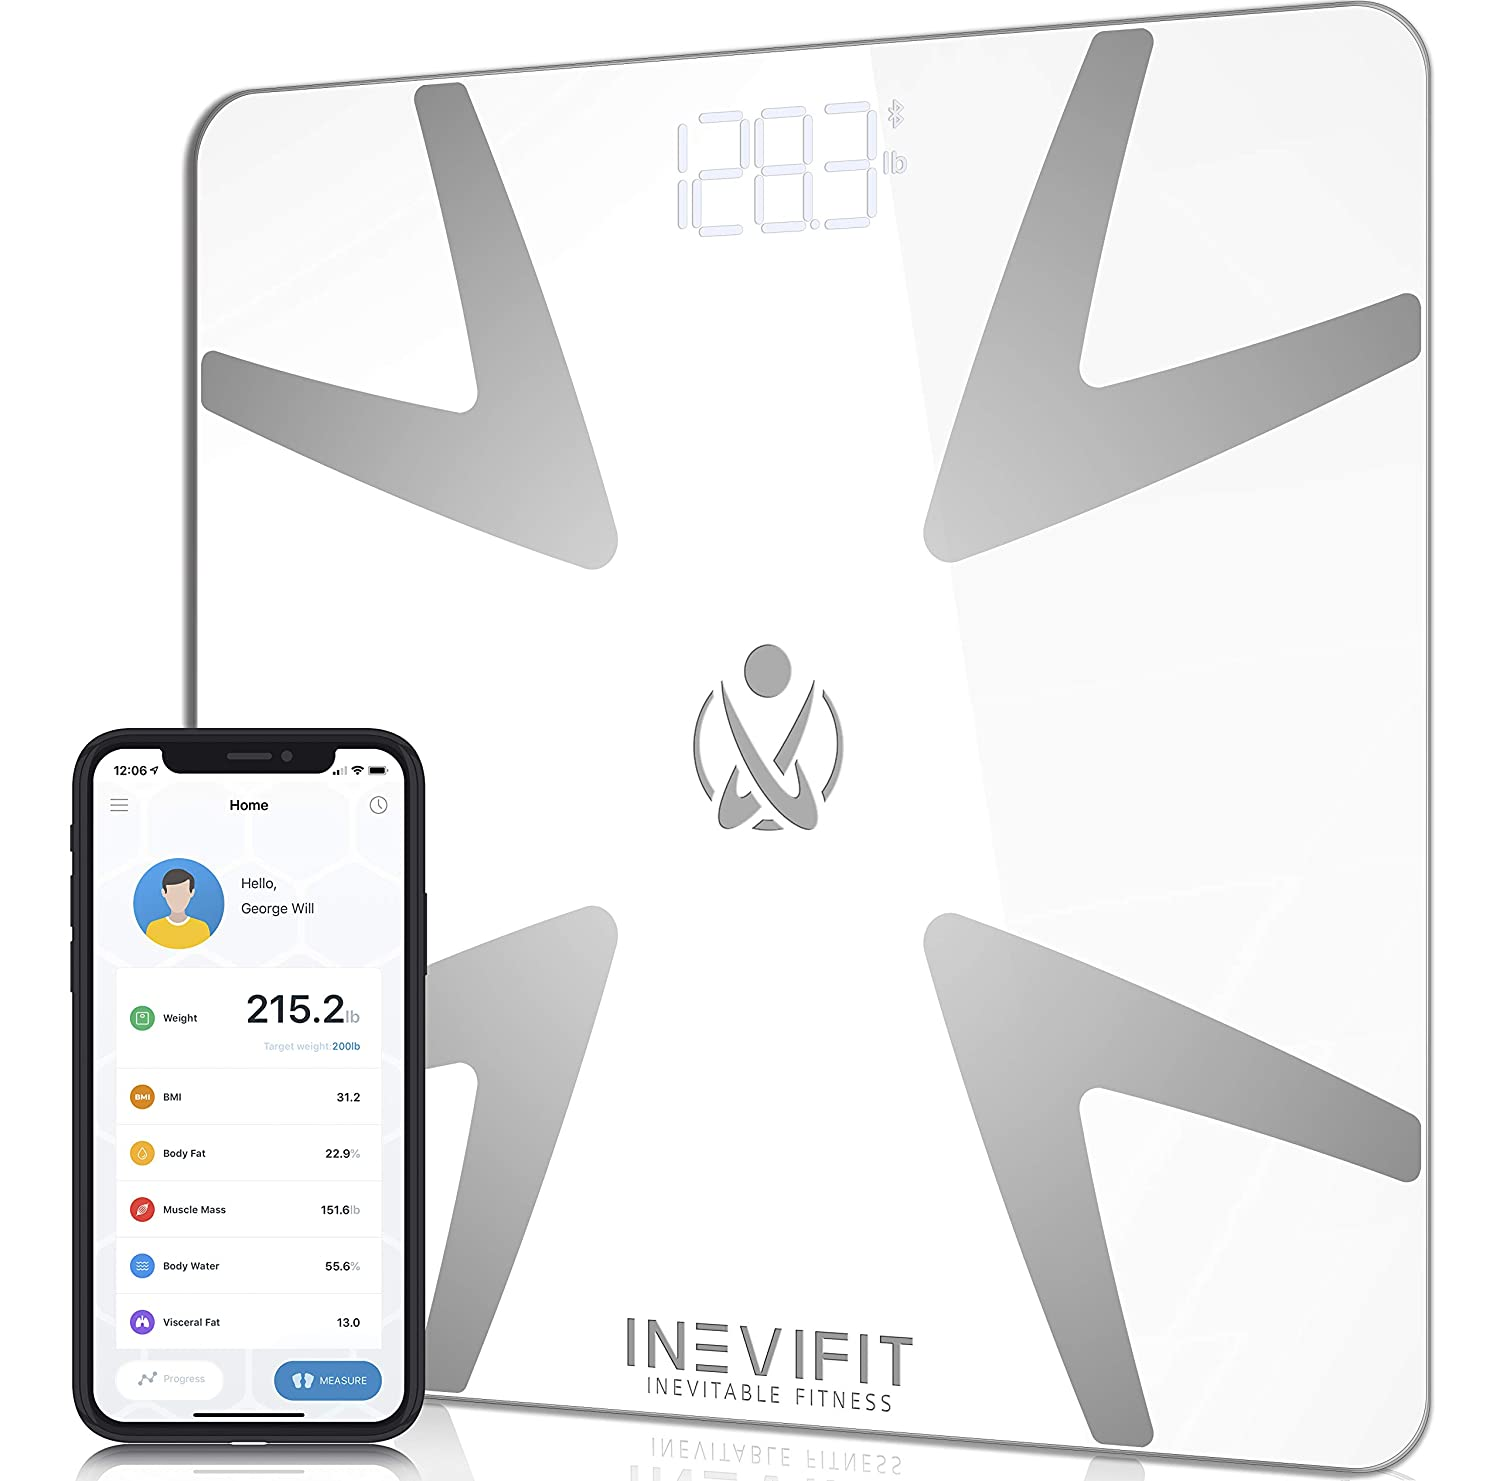 INEVIFIT Smart Body Fat Scale, Highly Accurate Bluetooth Digital Bathroom Body Composition Analyzer, Measures Weight, Body Fat, Water, Muscle, BMI, Visceral Fat Bone Mass for Unlimited Users